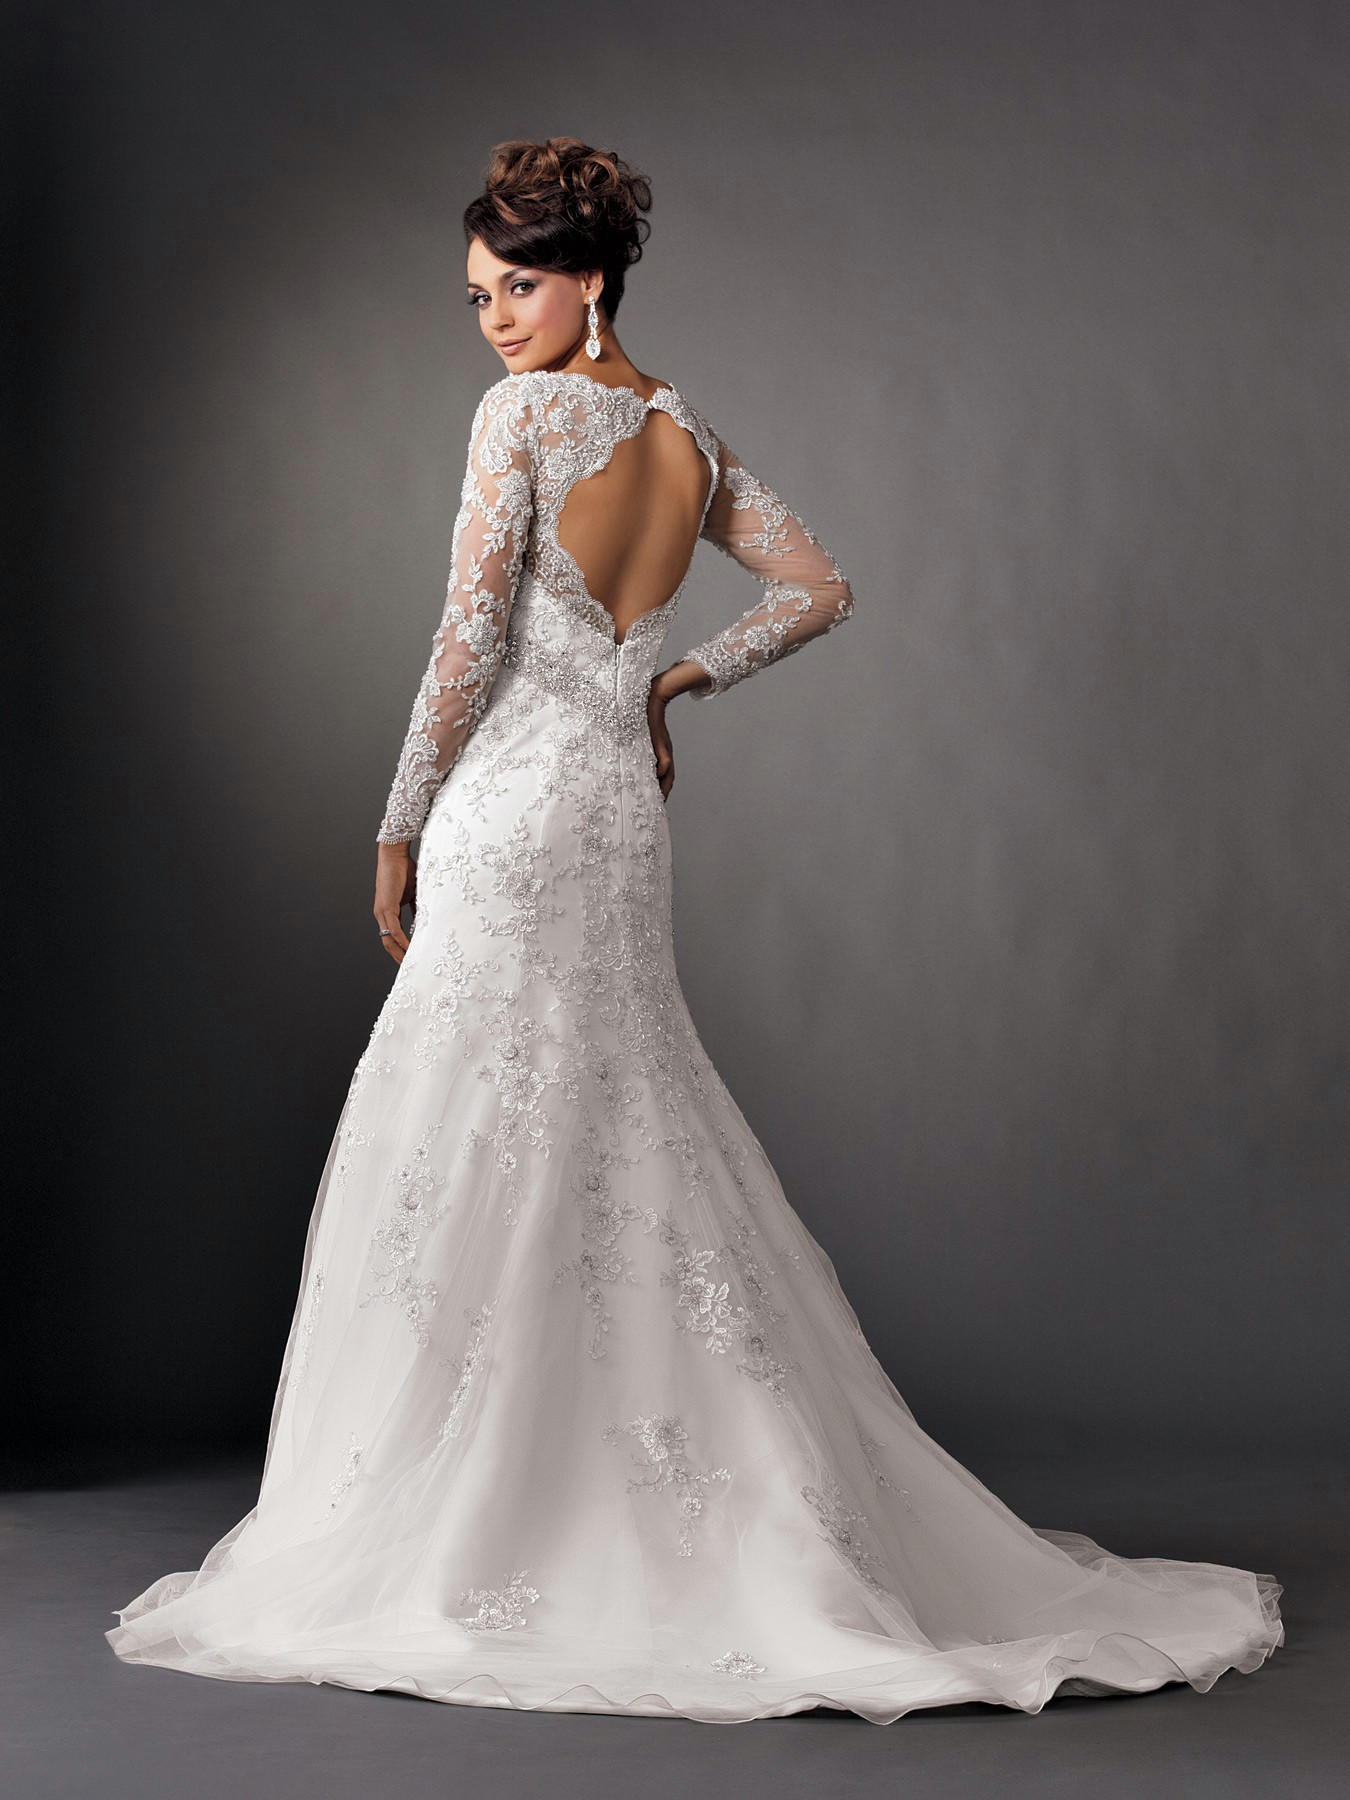 2014 2015 wedding dress trends lace sleeves dipped for Lacy wedding dresses